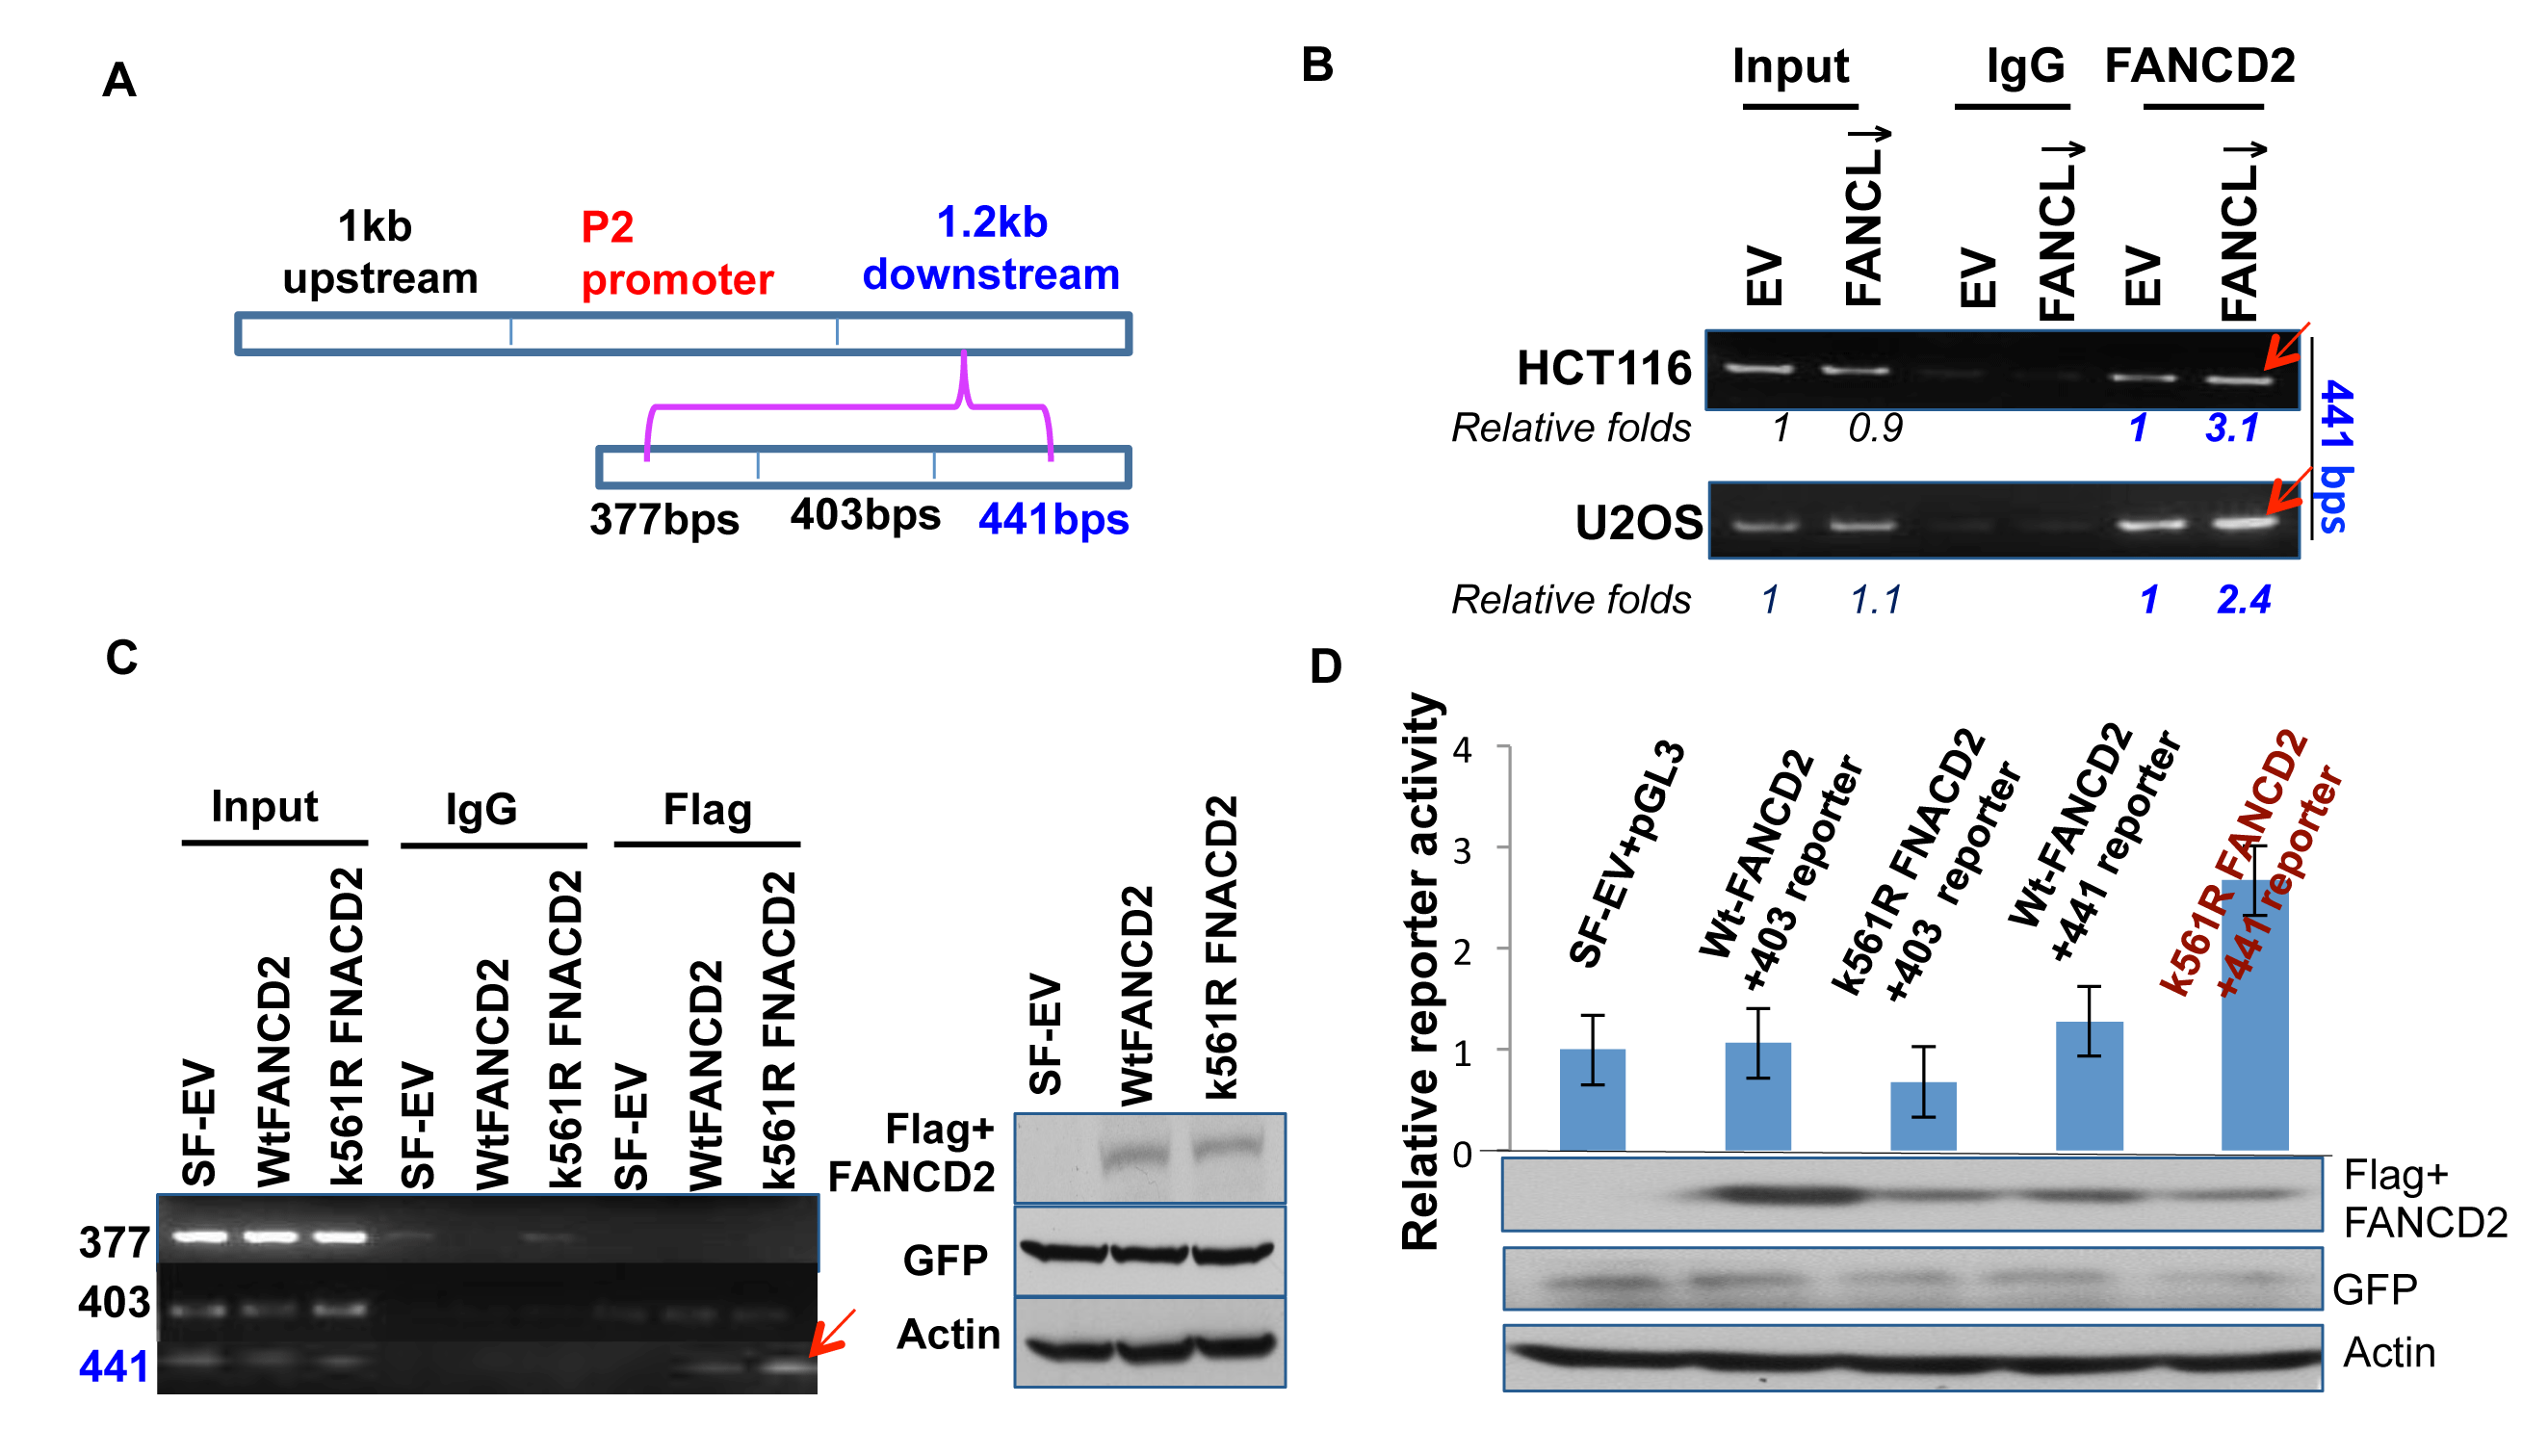 A 441bp DNA sequence within the 1.2kb fragemtn can mediate the regulation of ∆Np63 expression by inactivated FANCD2.